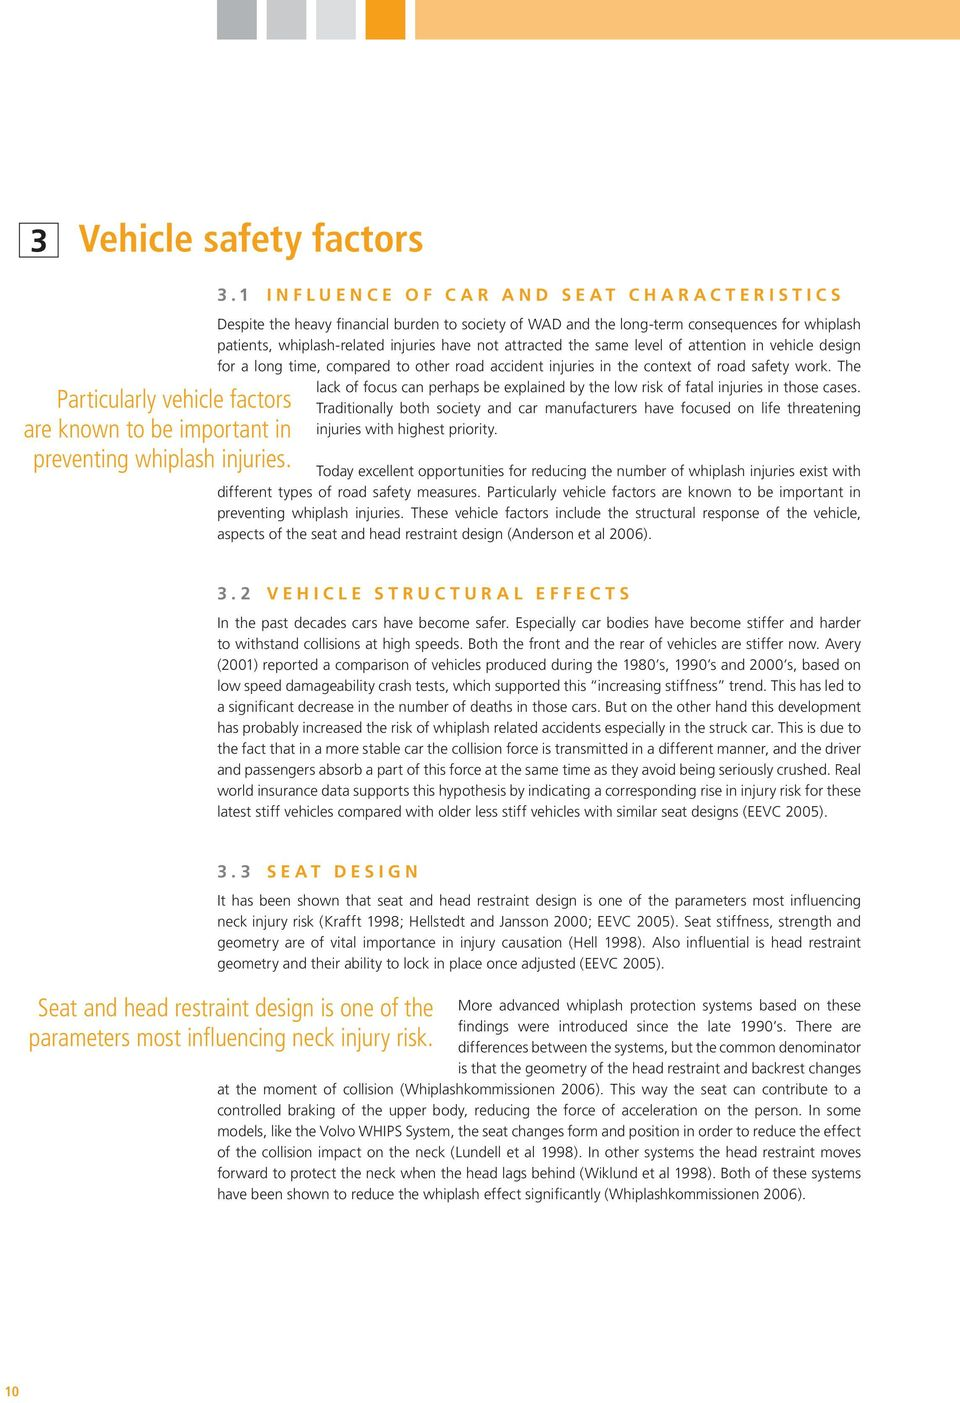 same level of attention in vehicle design for a long time, compared to other road accident injuries in the context of road safety work.